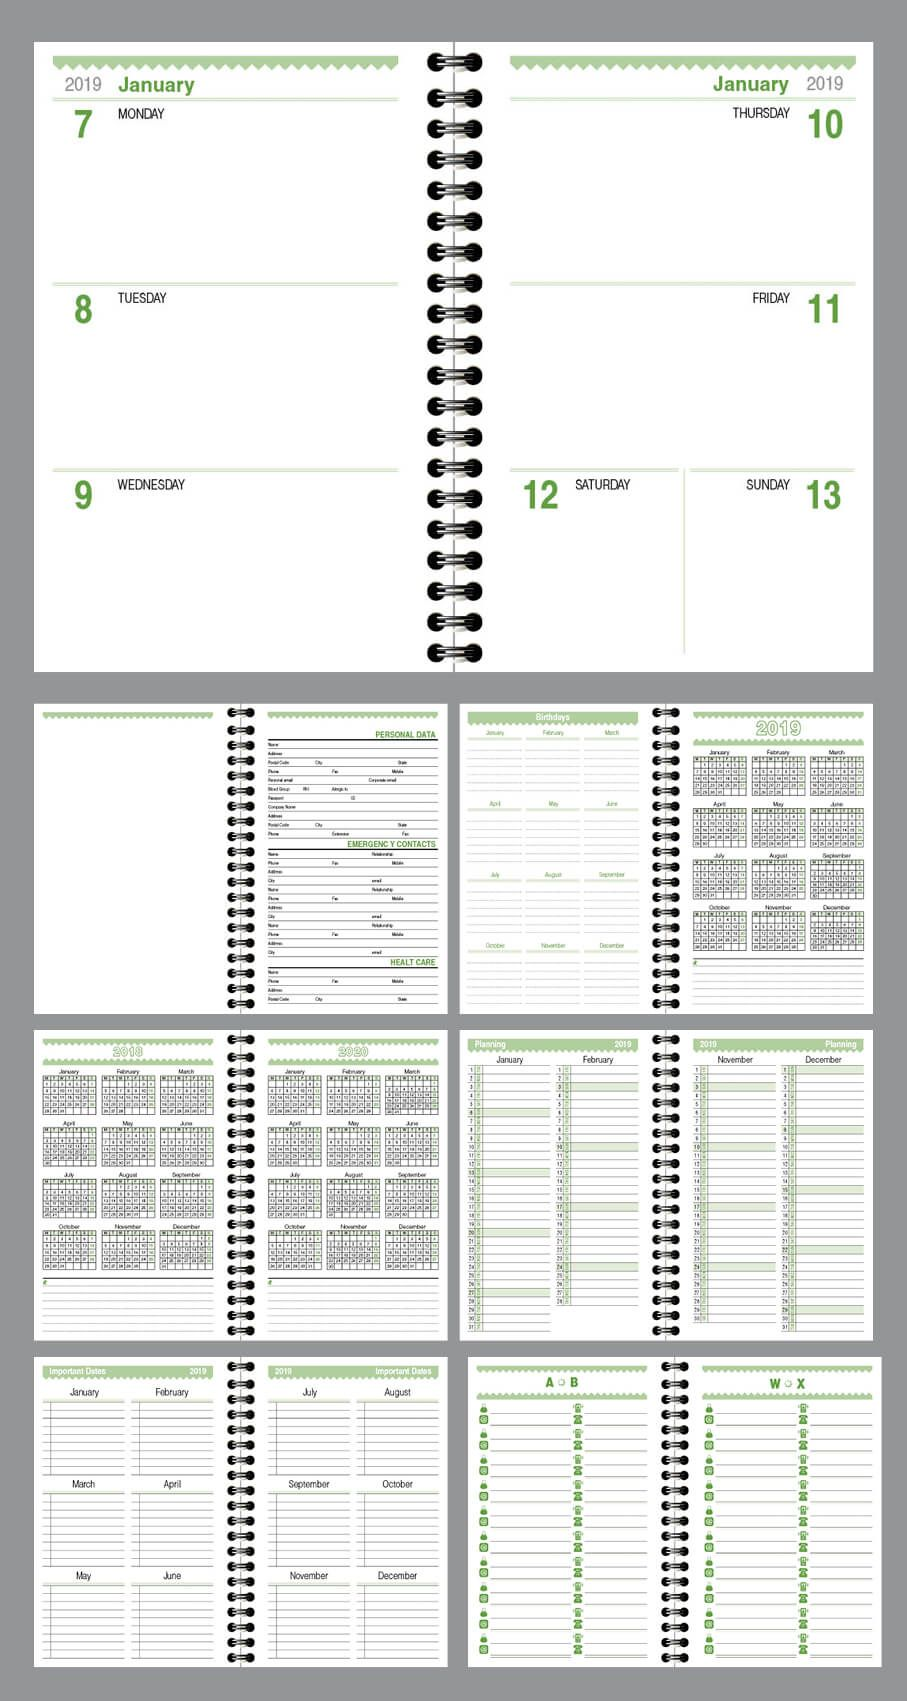 Daily planner agenda Indesign template fully editable, model ATD34